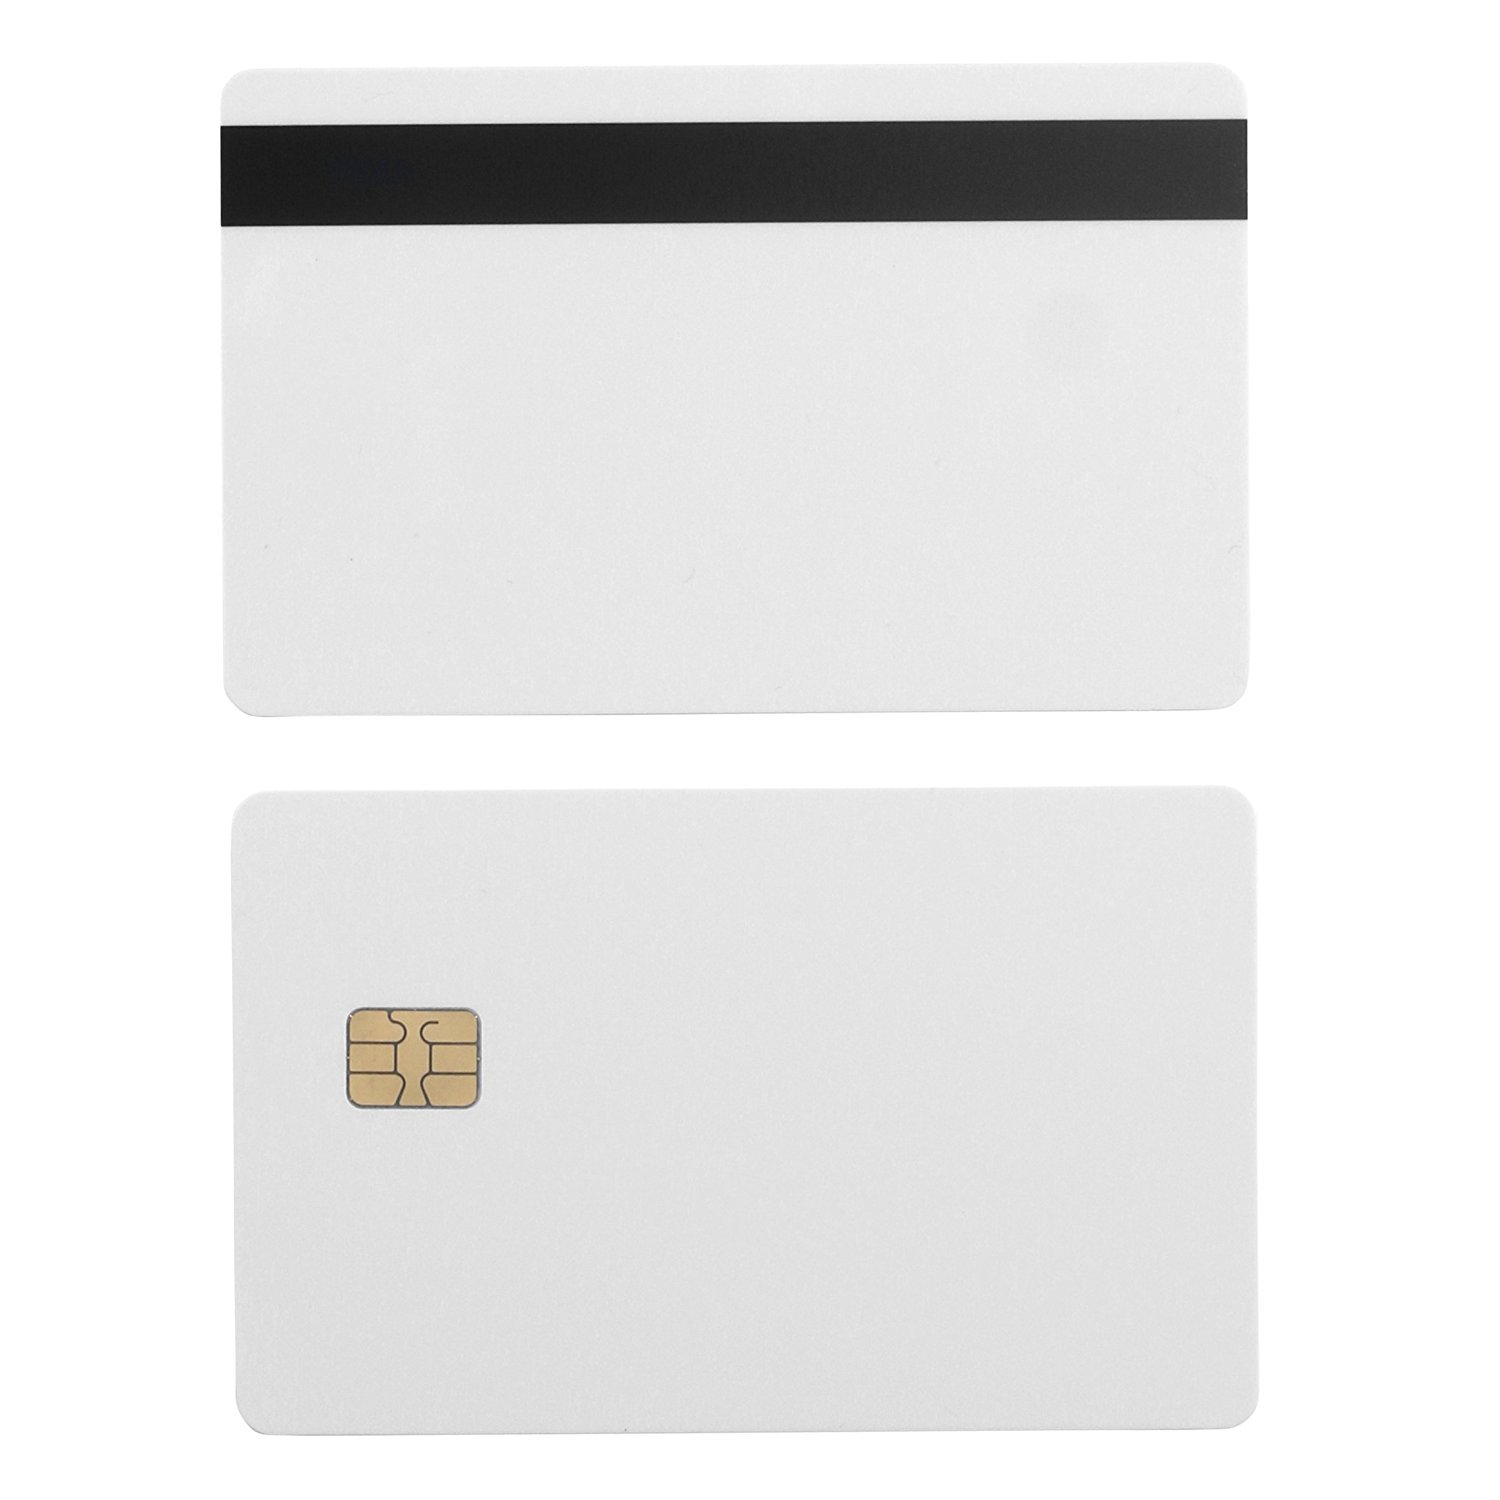 SLE4442 Chip Cards w/ HiCo 2 Track Mag Stripe - 200 Pack